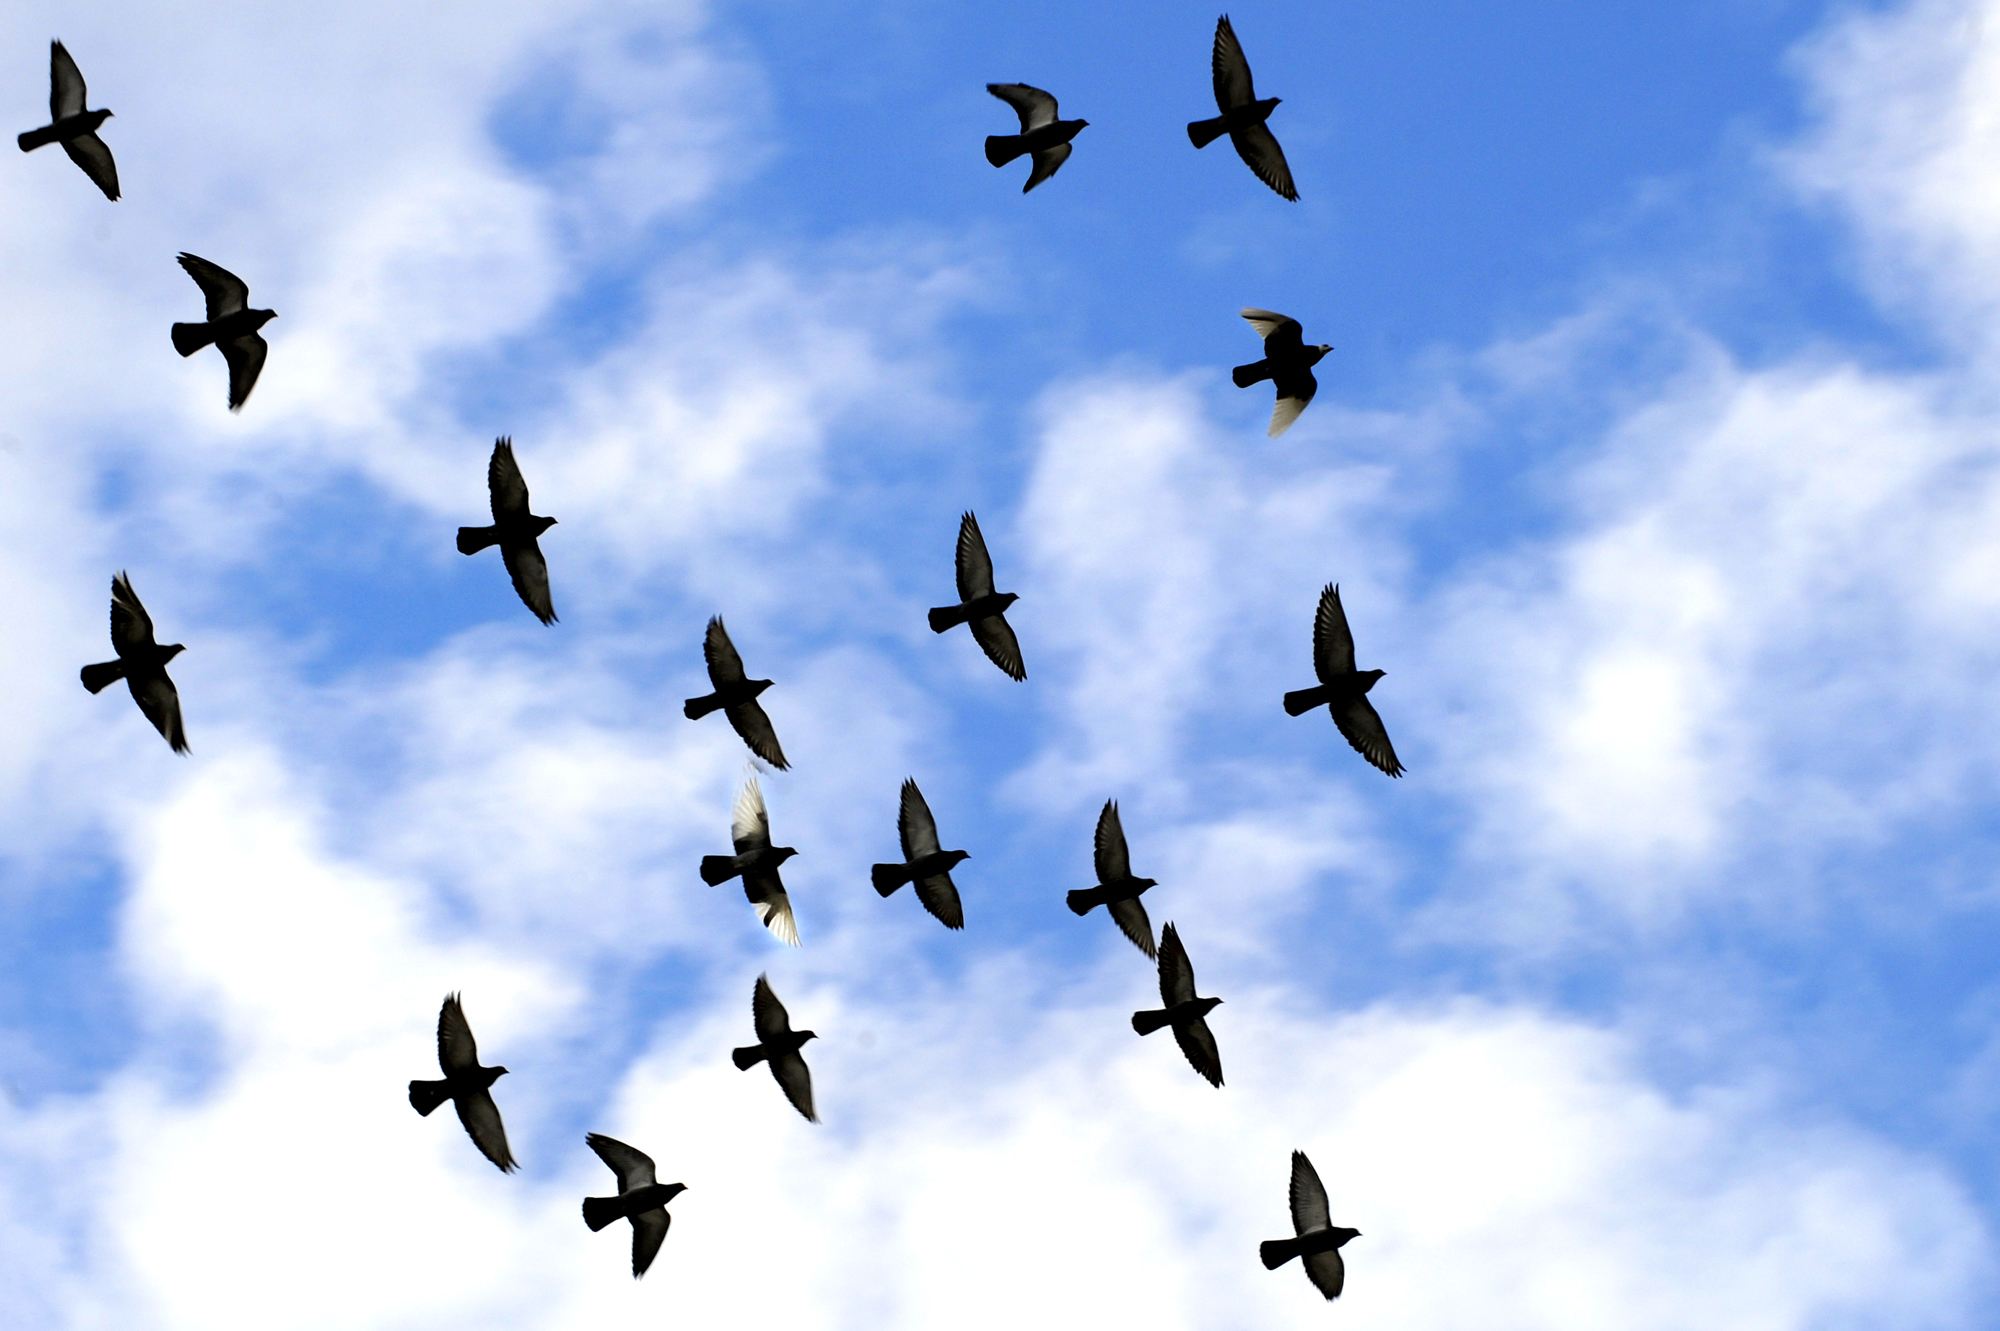 animated birds flying in the sky